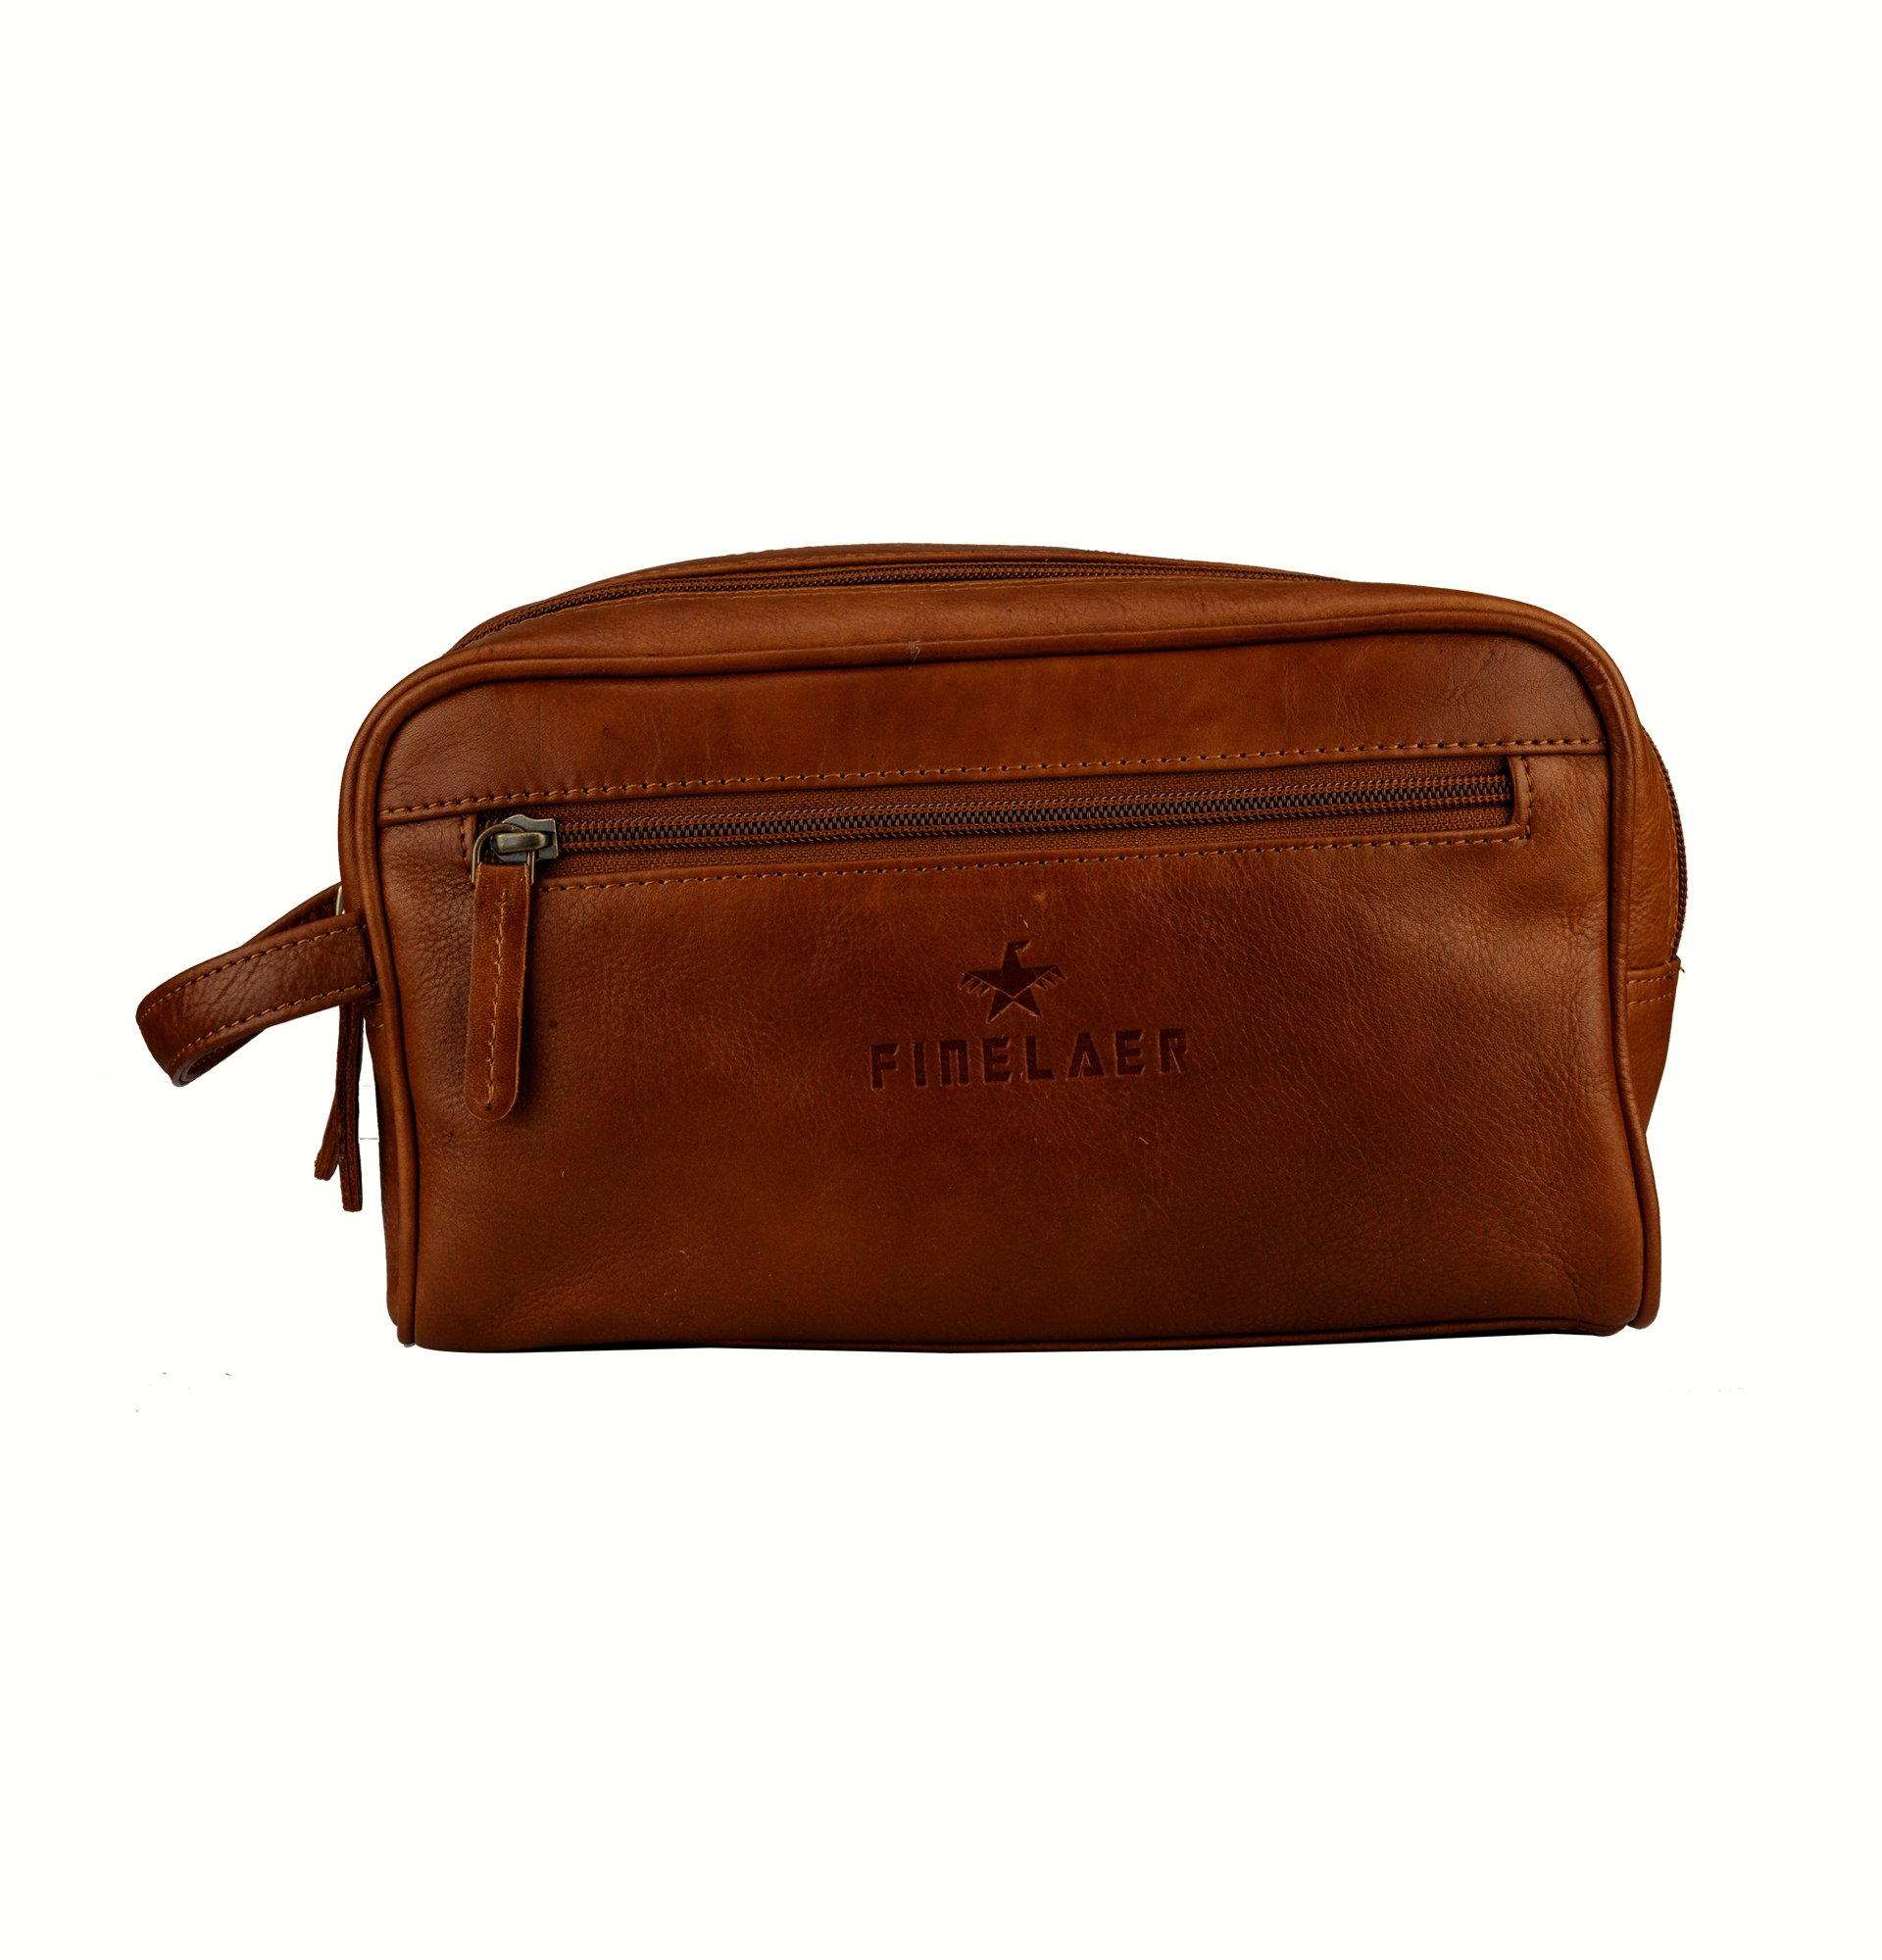 Finelaer Men Brown Leather Toiletry Travel Dopp Bag by FINELAER (Image #1)